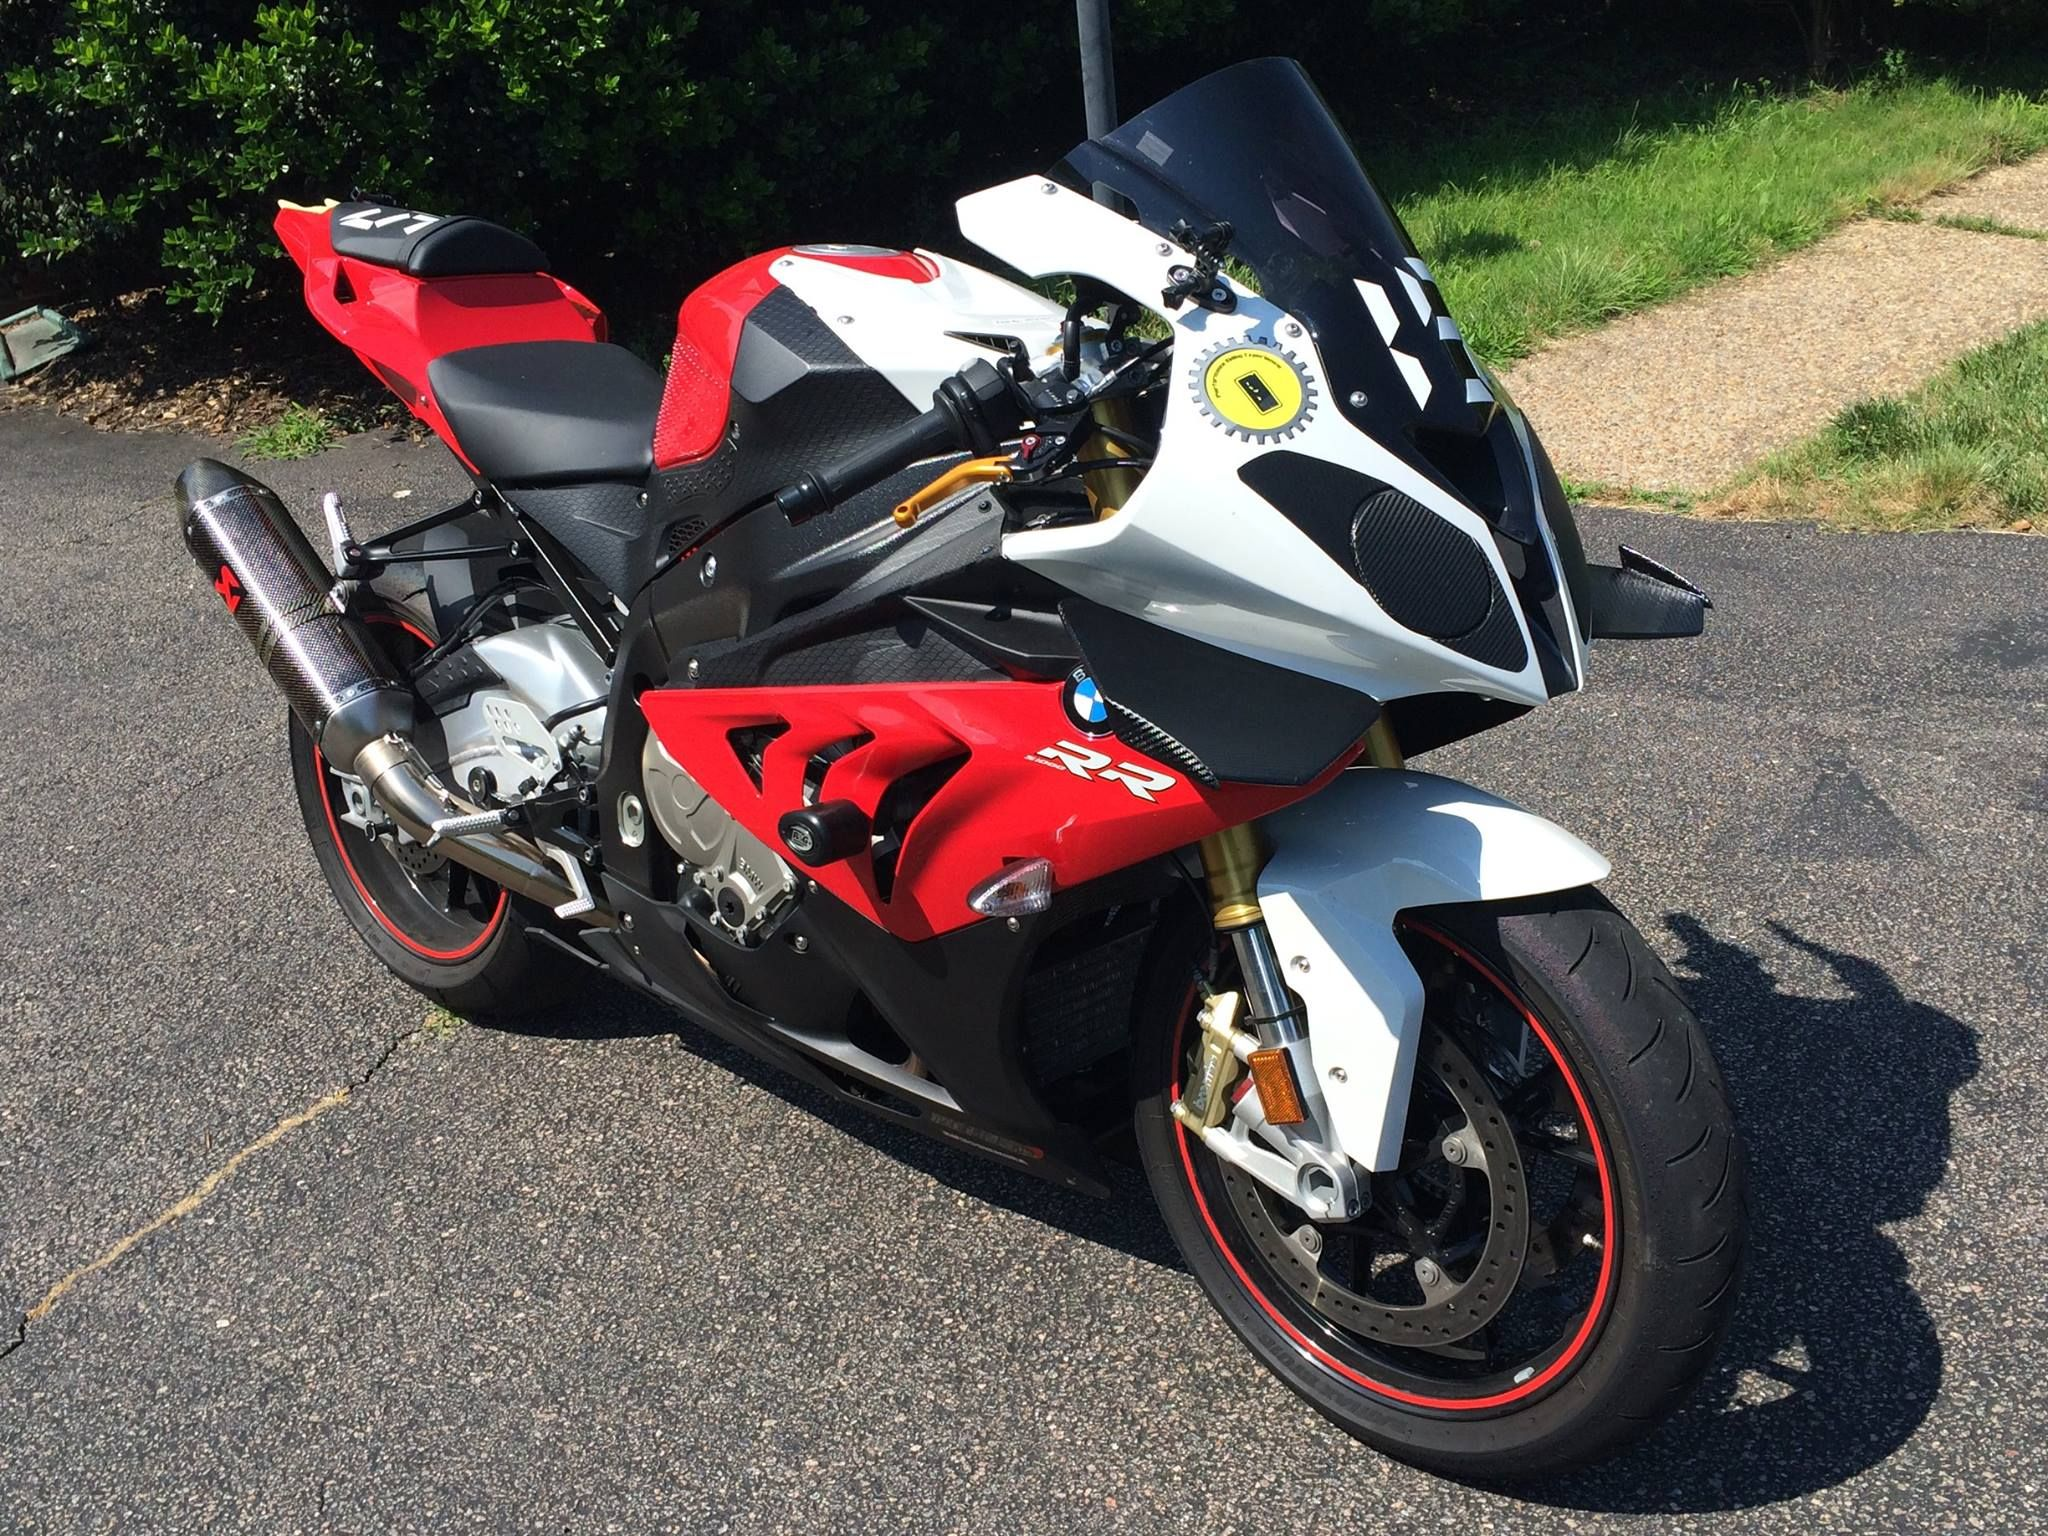 3d Printed Winglets For Bmw S1000rr Bikes Bmw S1000rr 3d